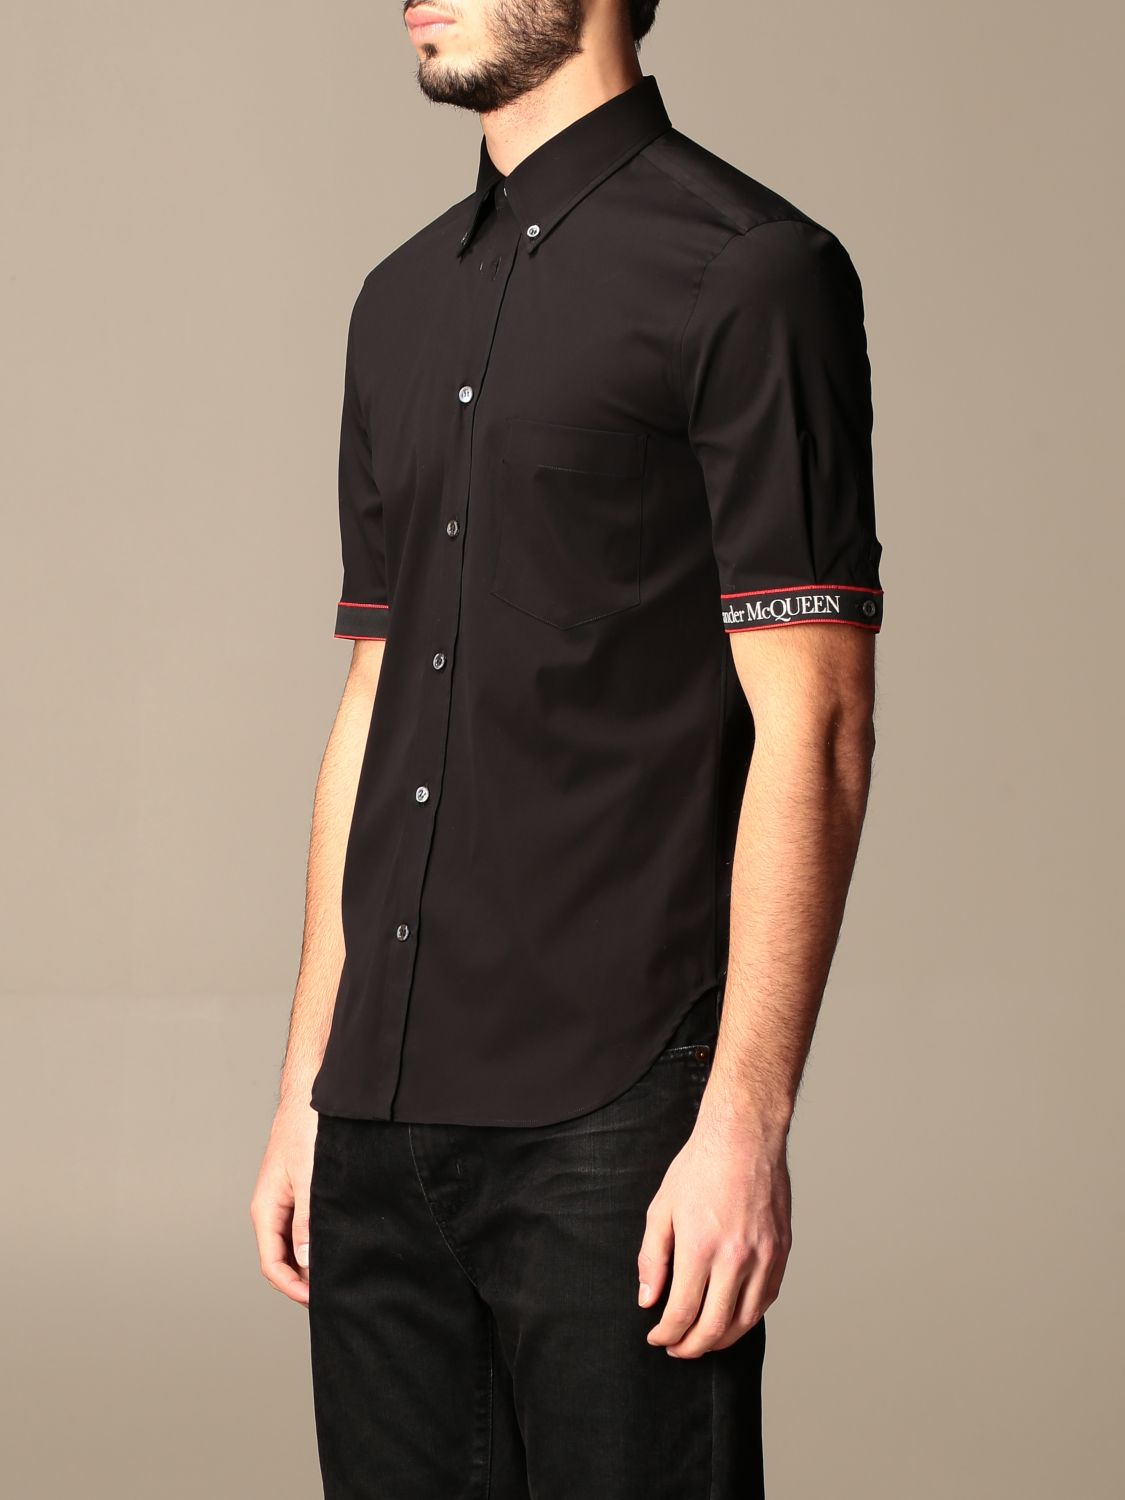 Shirt Alexander Mcqueen: Alexander McQueen shirt with logoed bands black 4